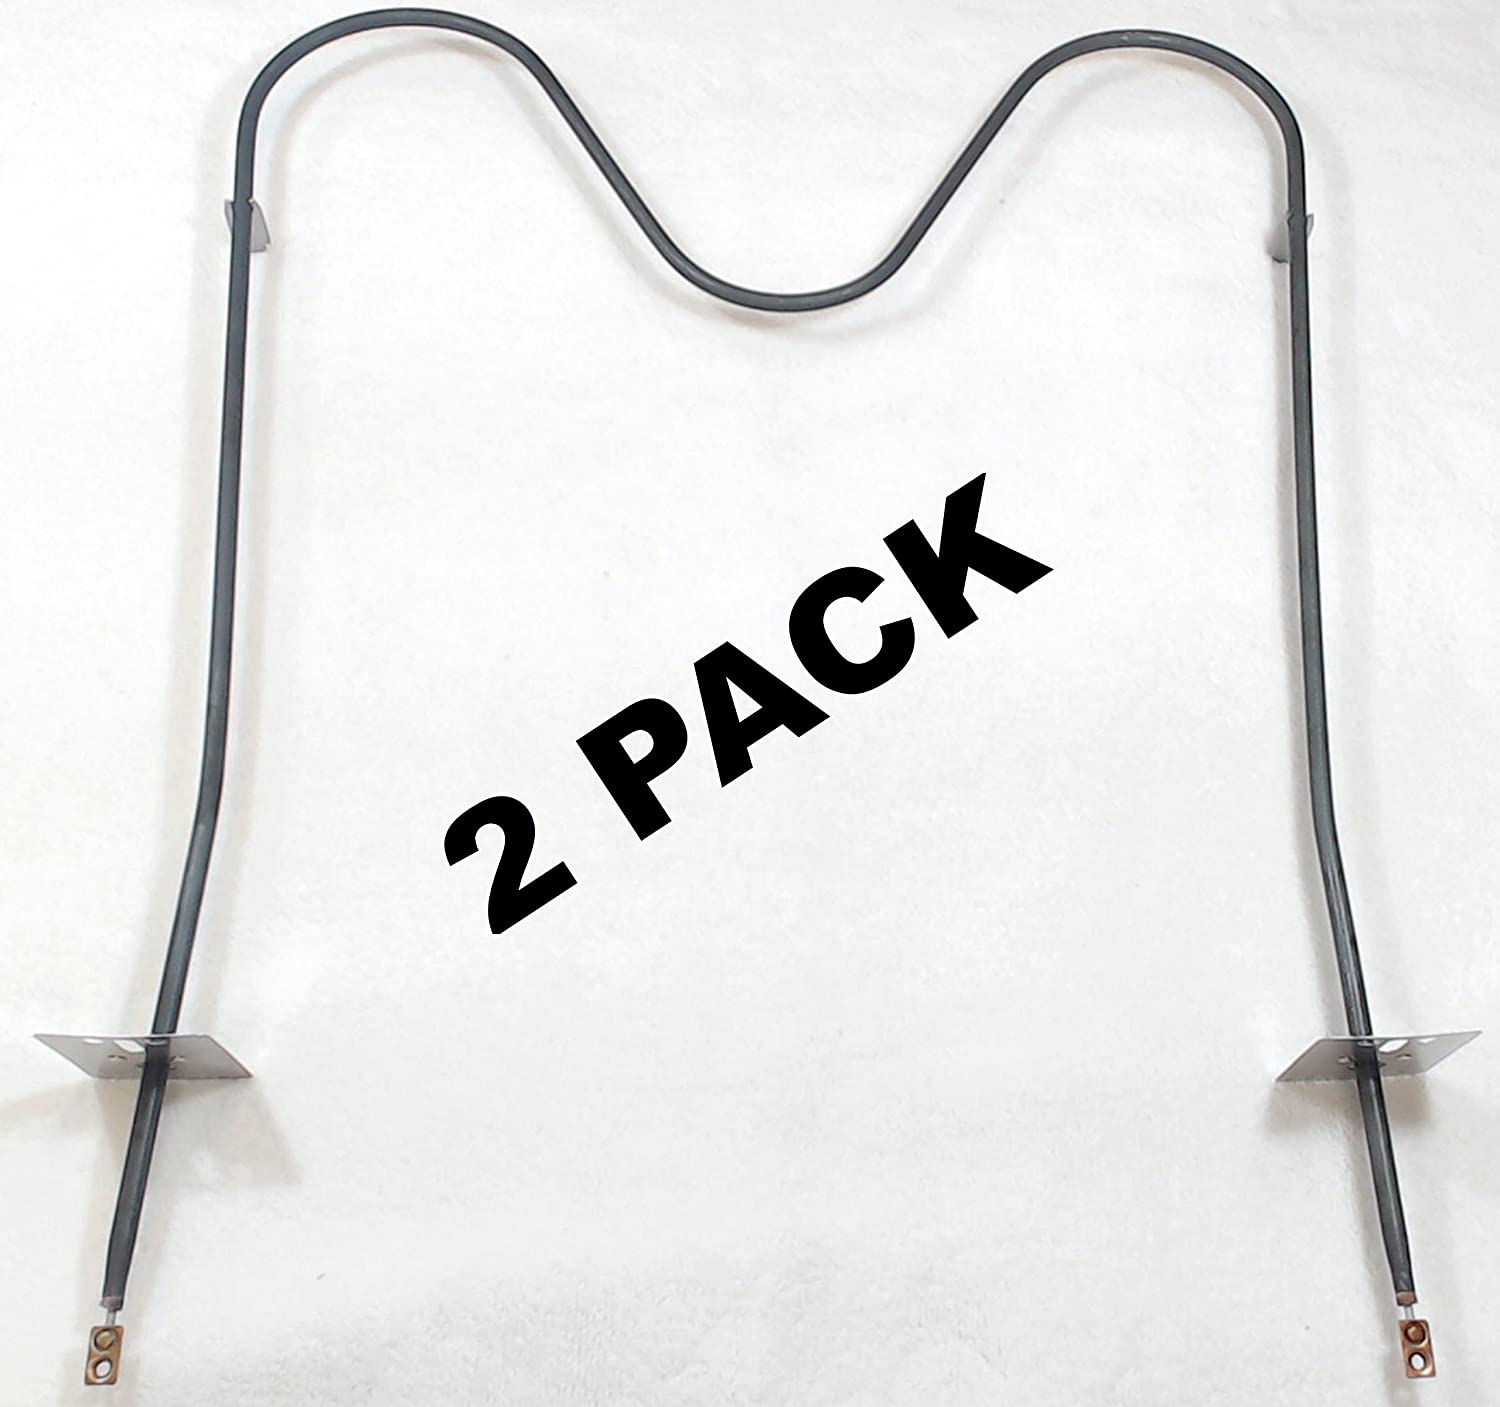 2 Pk, Bake Element for Whrilpool, Sears, AP3095829, PS340505, 326791